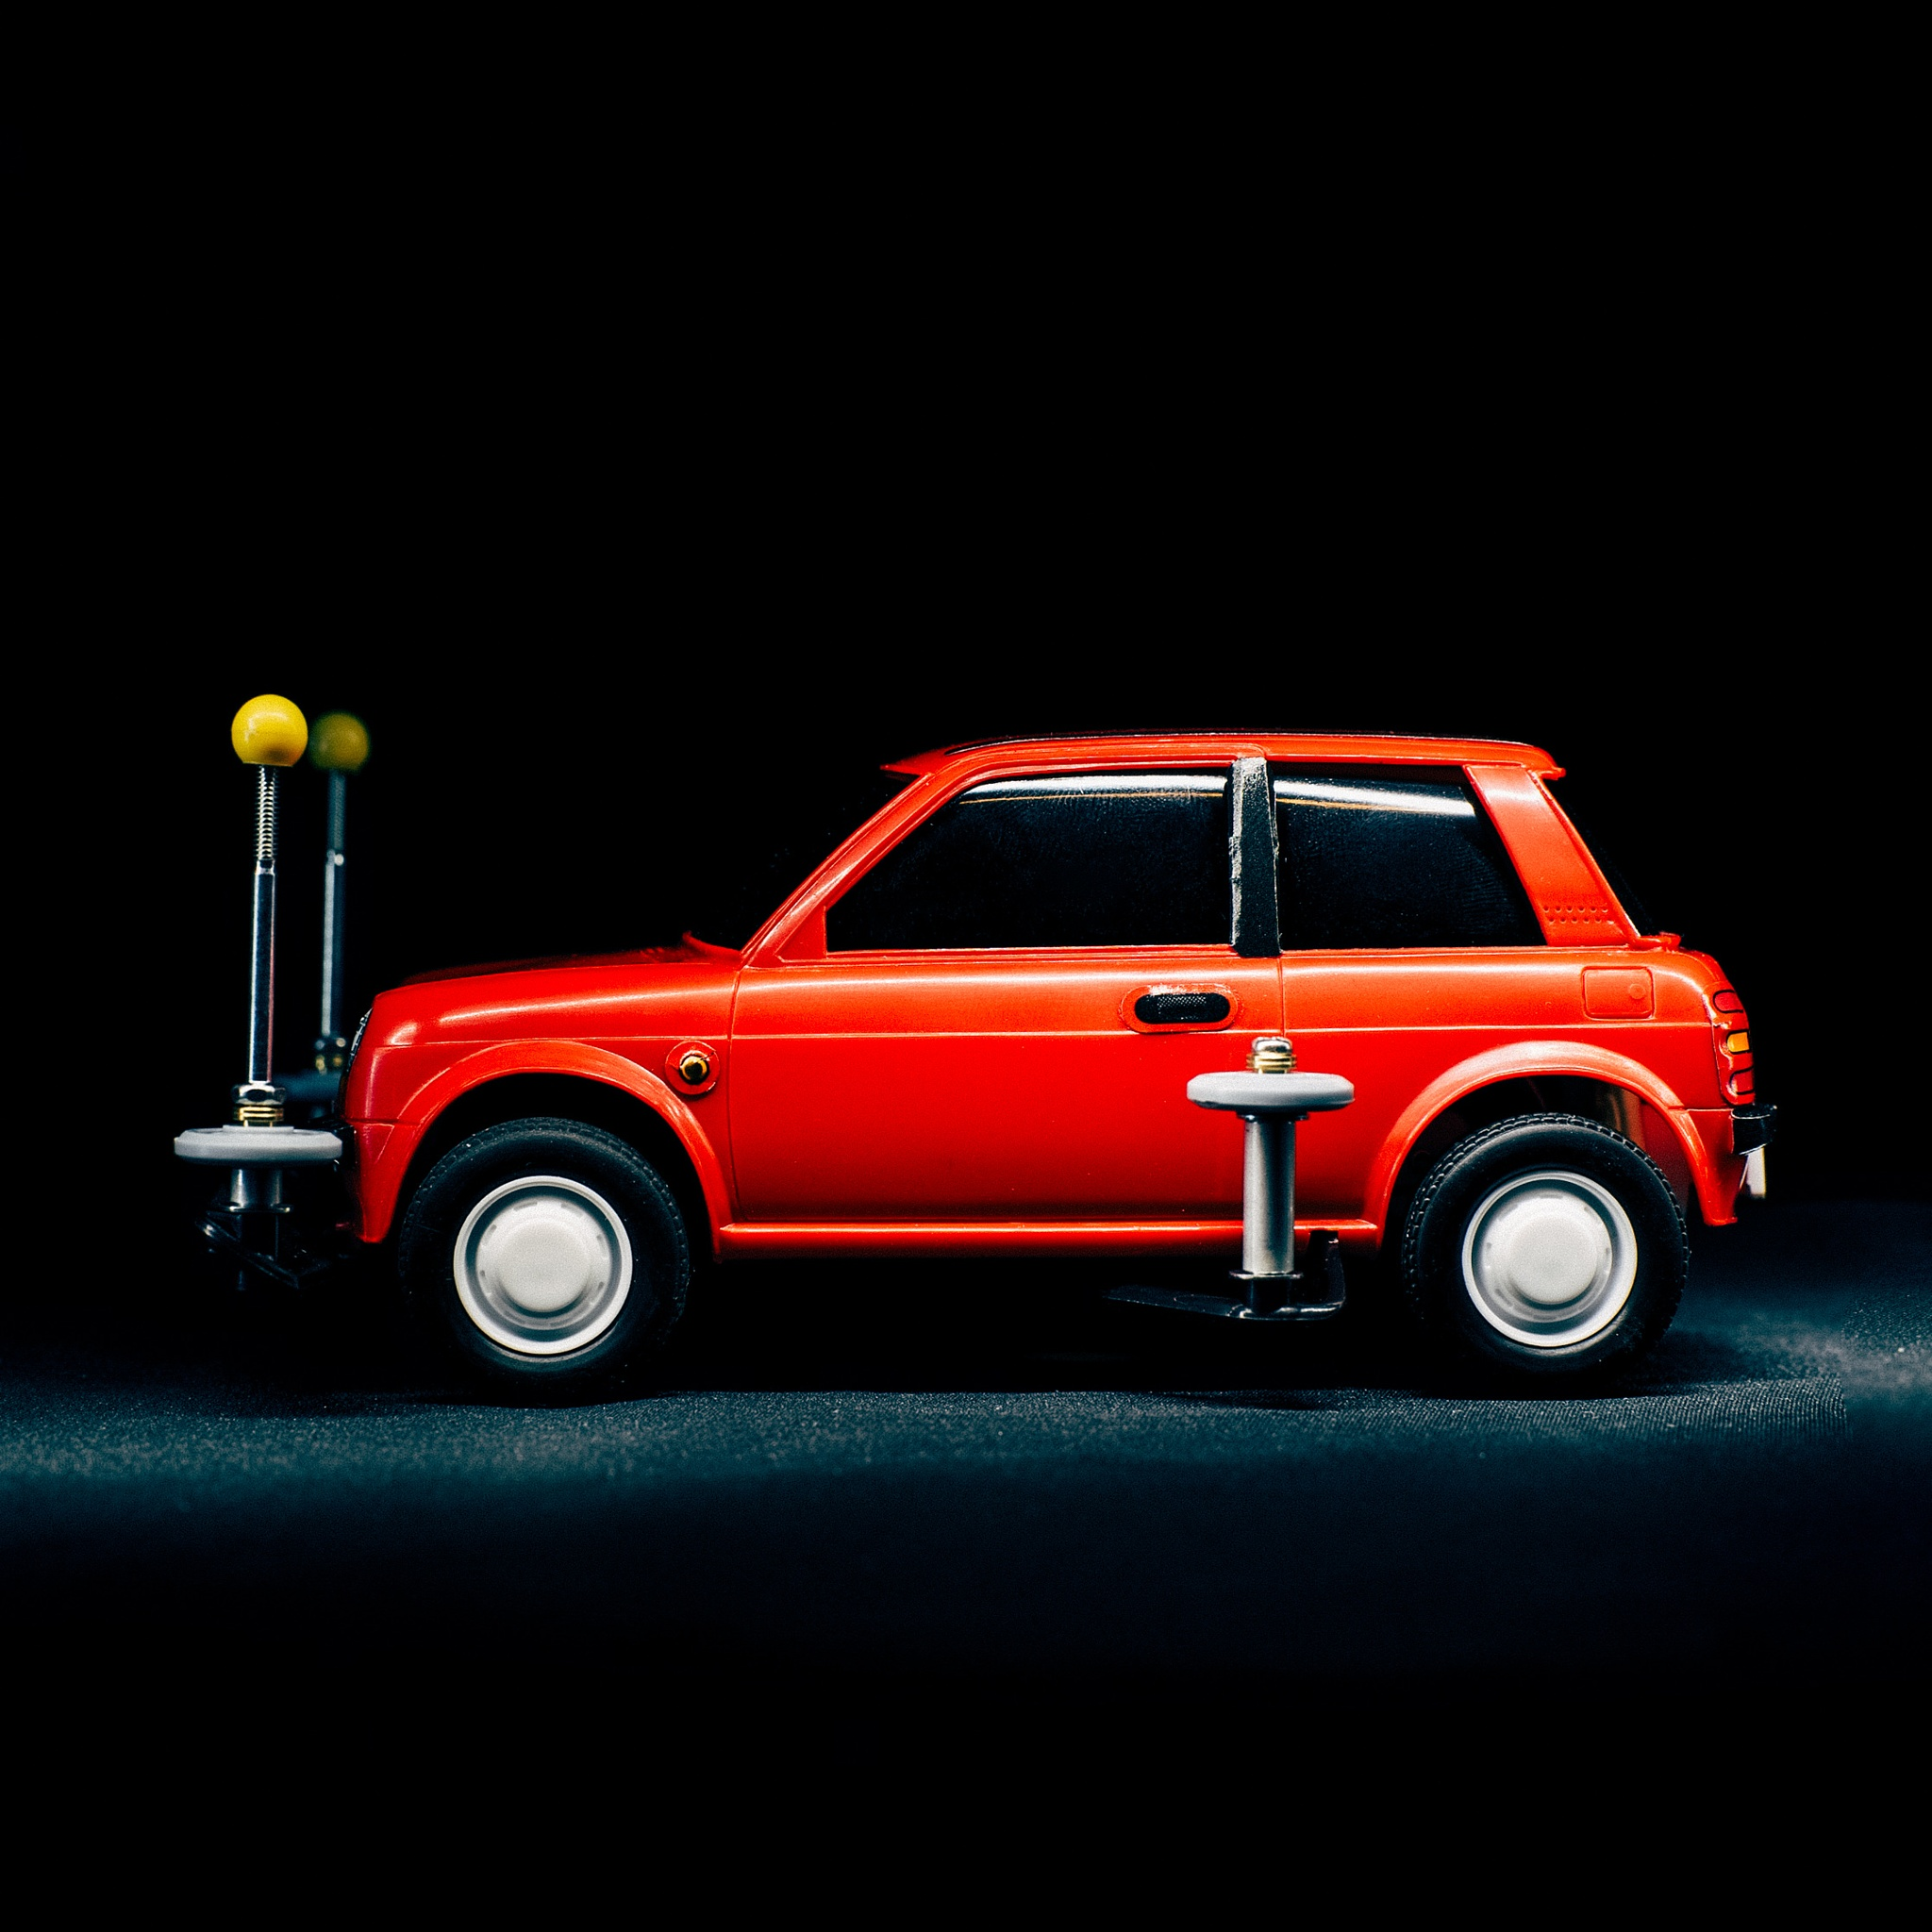 Little Red Car by Kenny Saputra